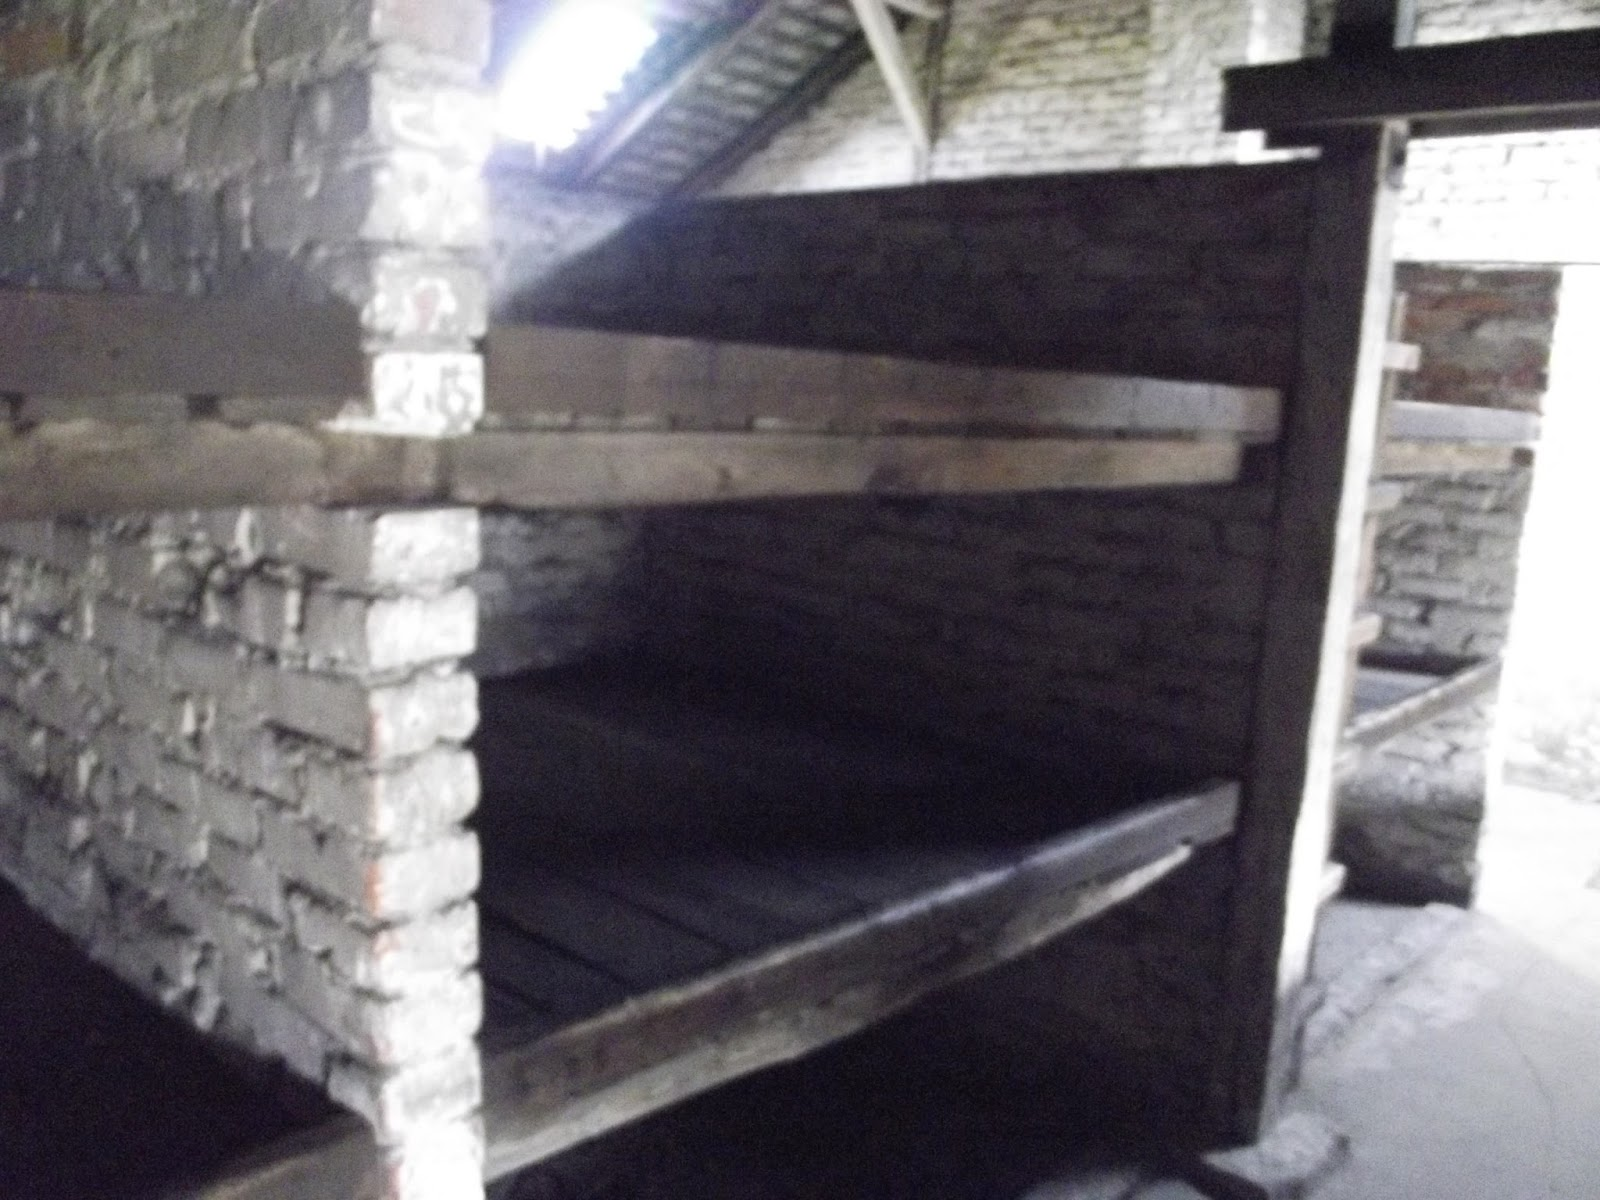 Auschwitz II prisoner barrack